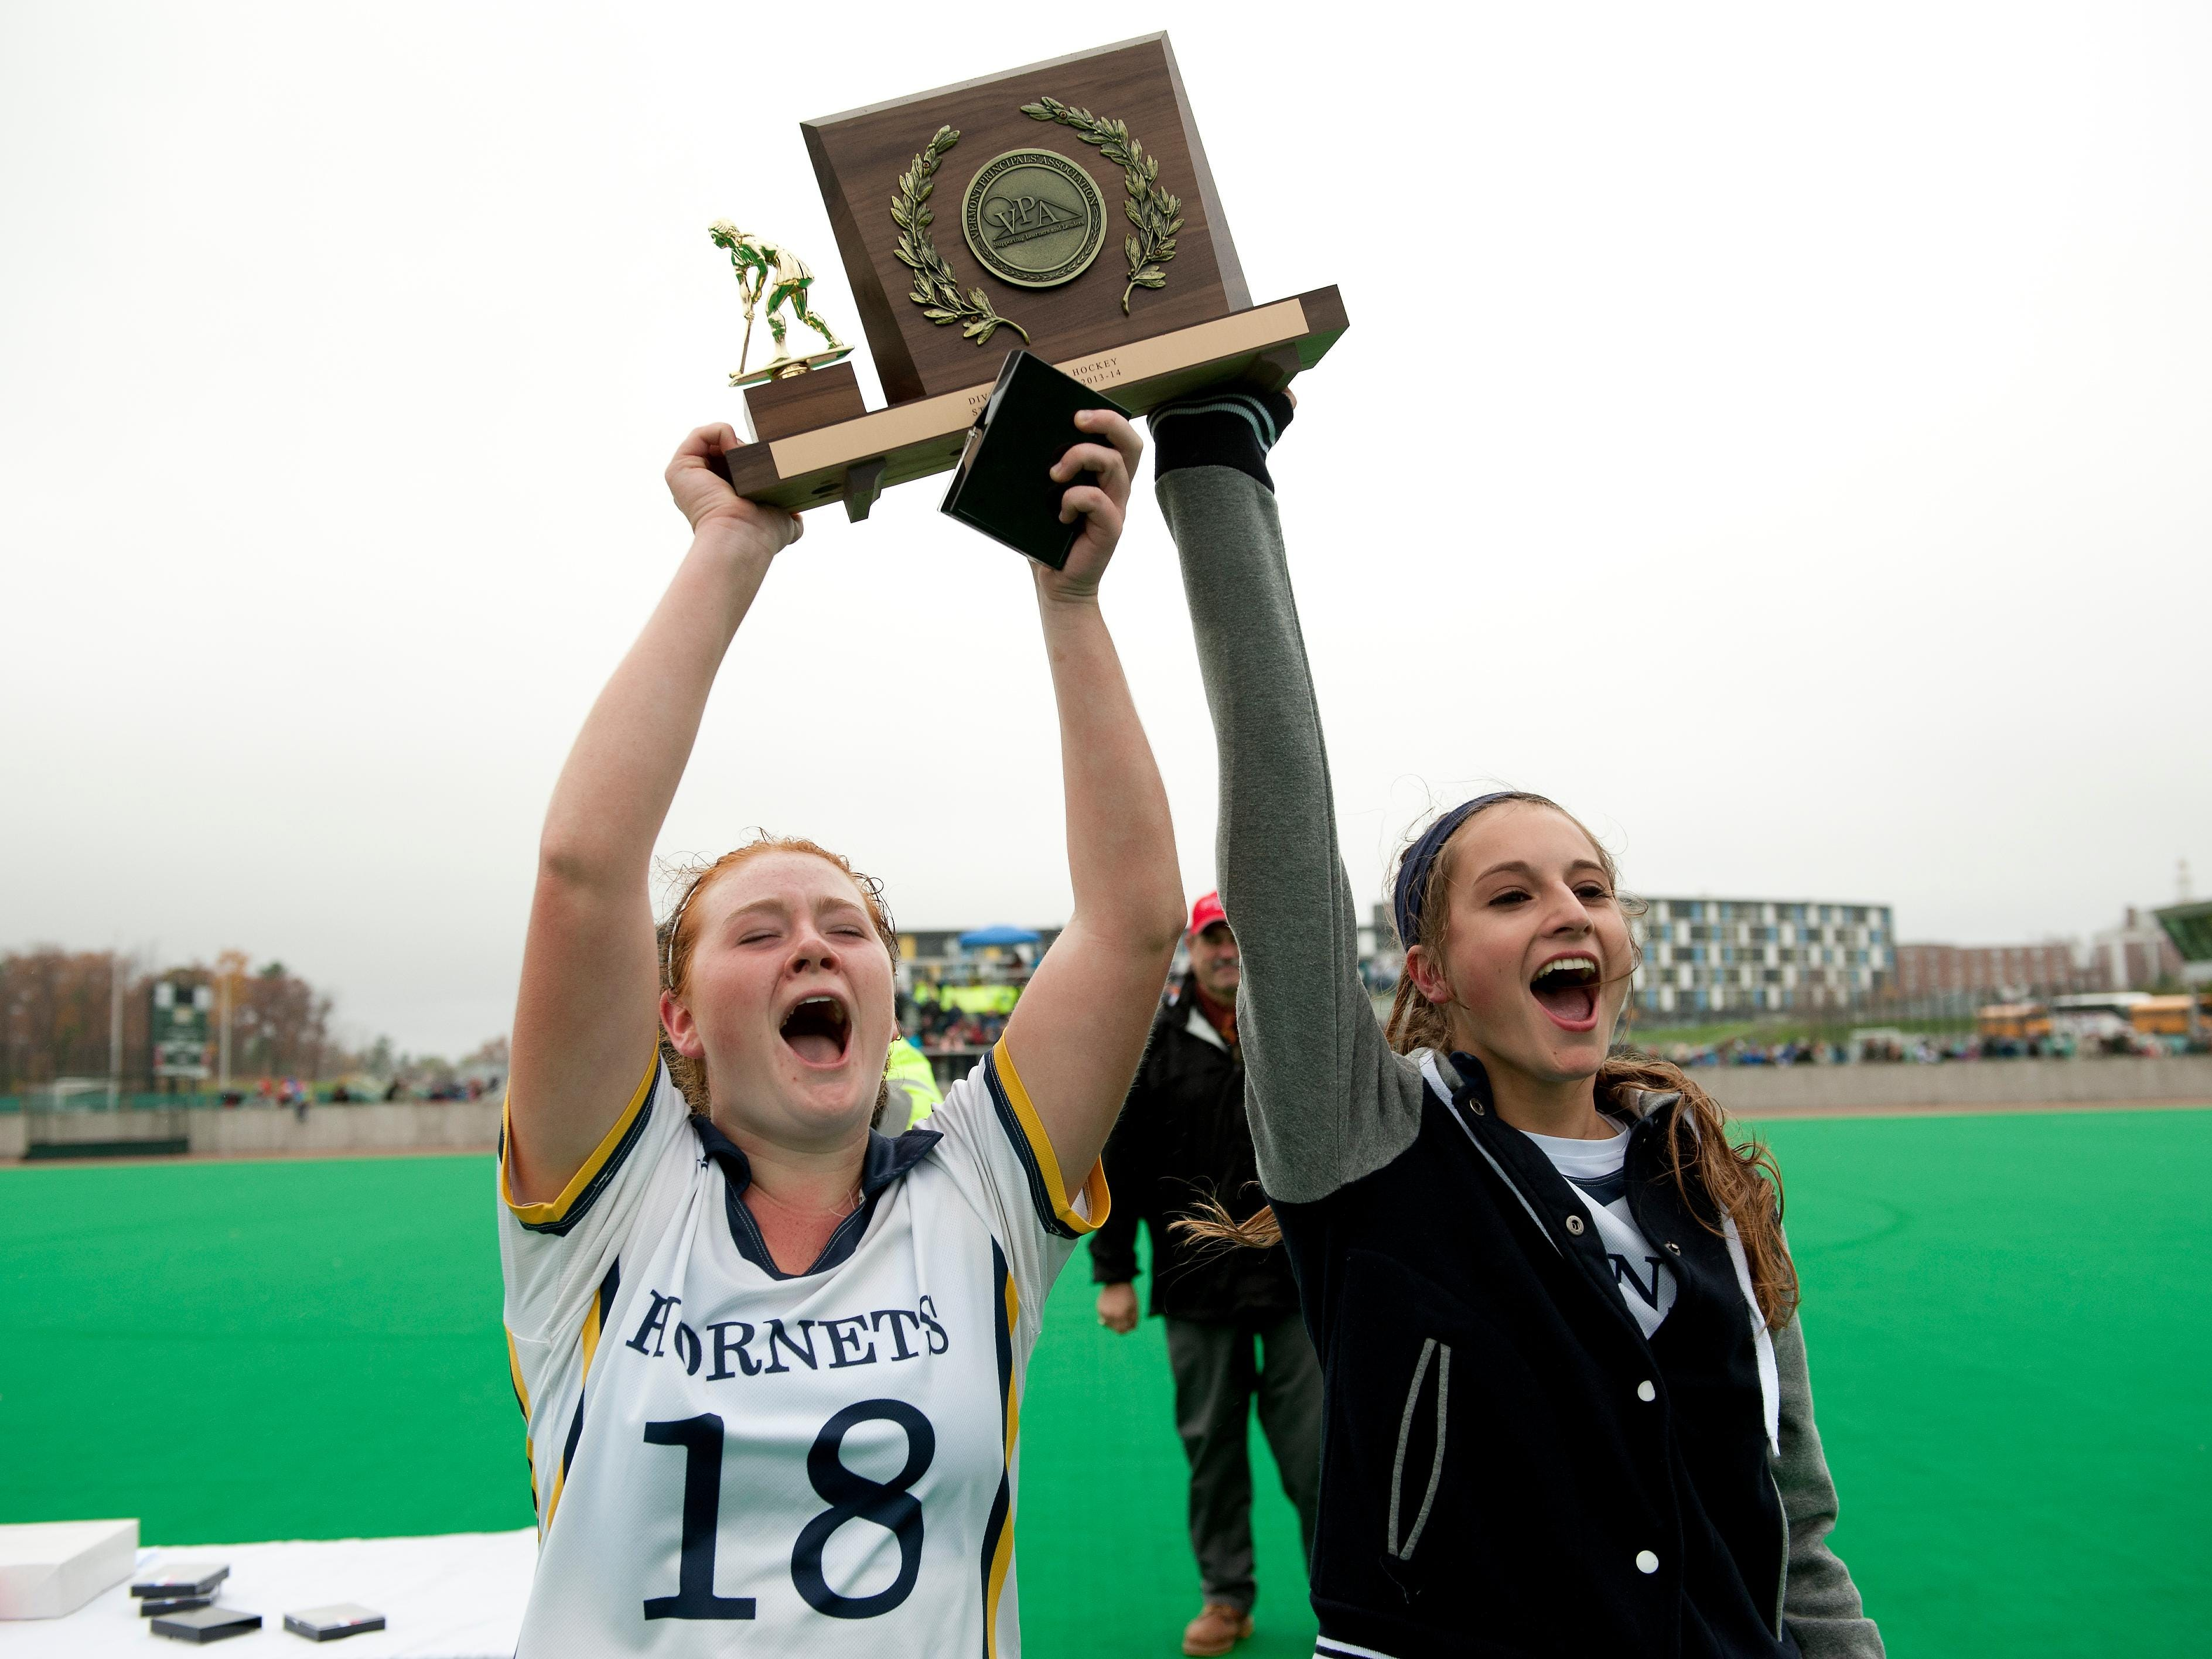 Essex captains Paula Noordewier, right, and Alexandra Celia hold up the trophy awarded to the Division I field hockey state champions by the Vermont Principals' Association on Nov. 2, 2013.